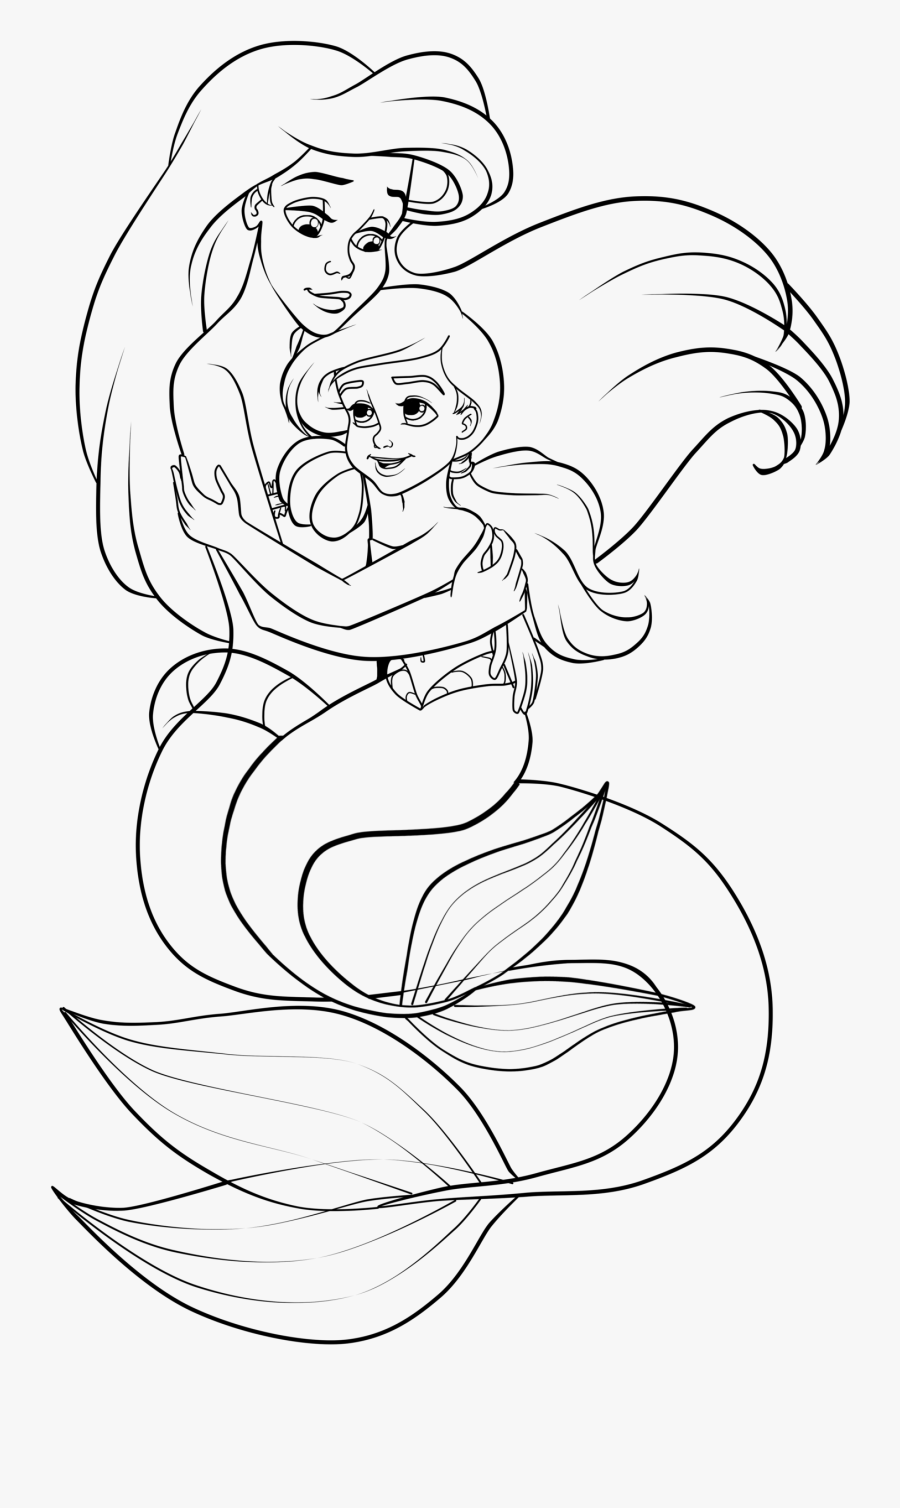 Mermaid Drawing Png - Melody Little Mermaid Coloring, Transparent Clipart